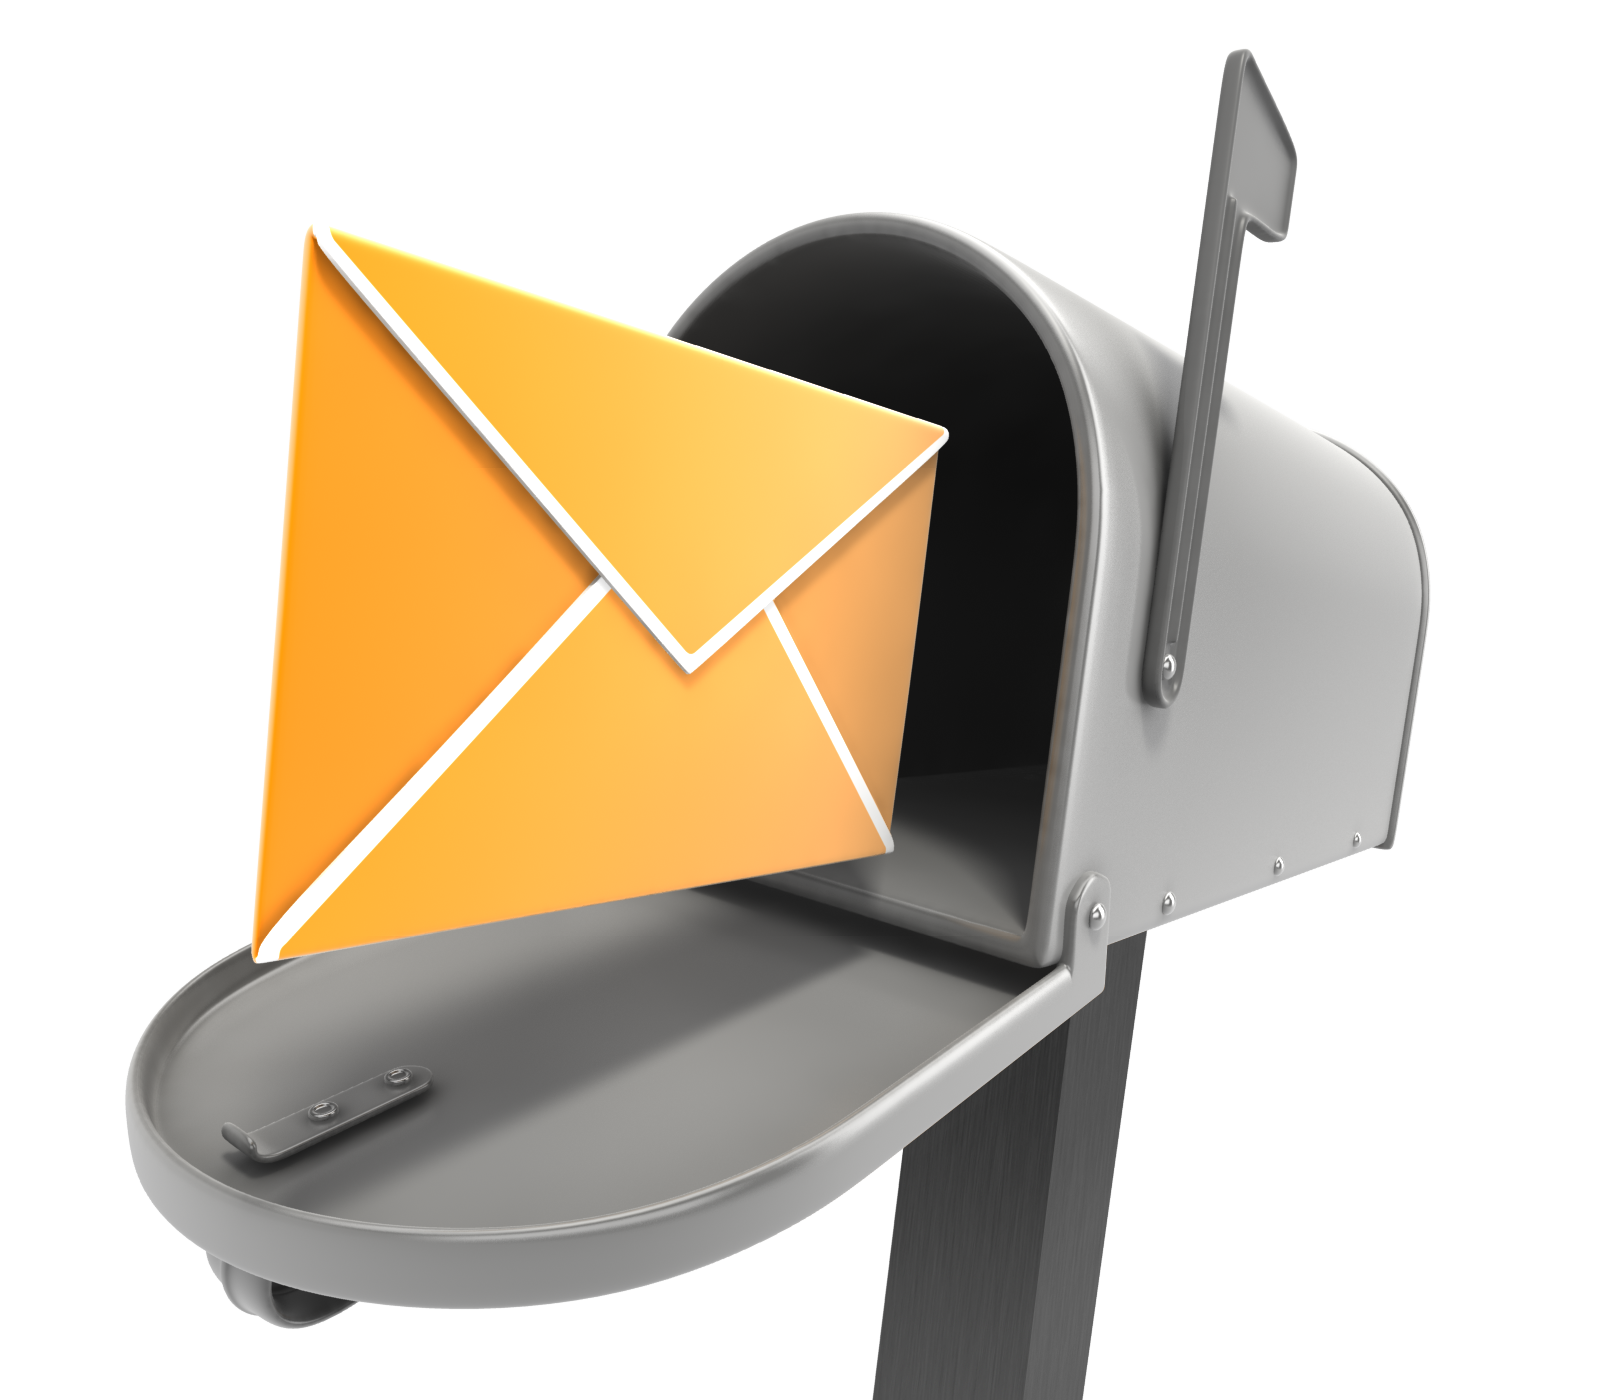 Mail box icons png. Mailbox clipart empty mailbox